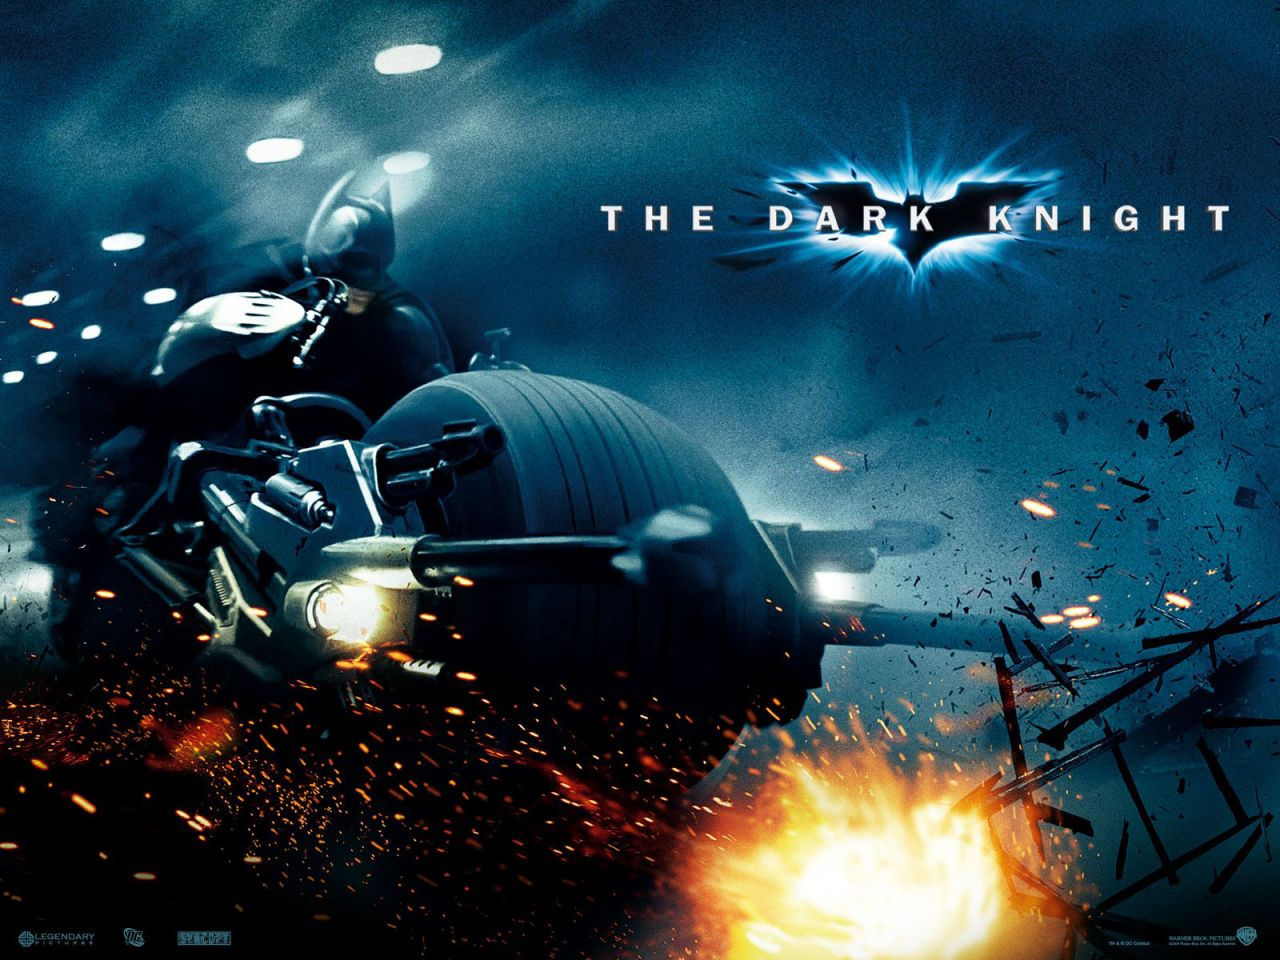 Batman Riding Motorcycle Poster Wallpaper 1280x960